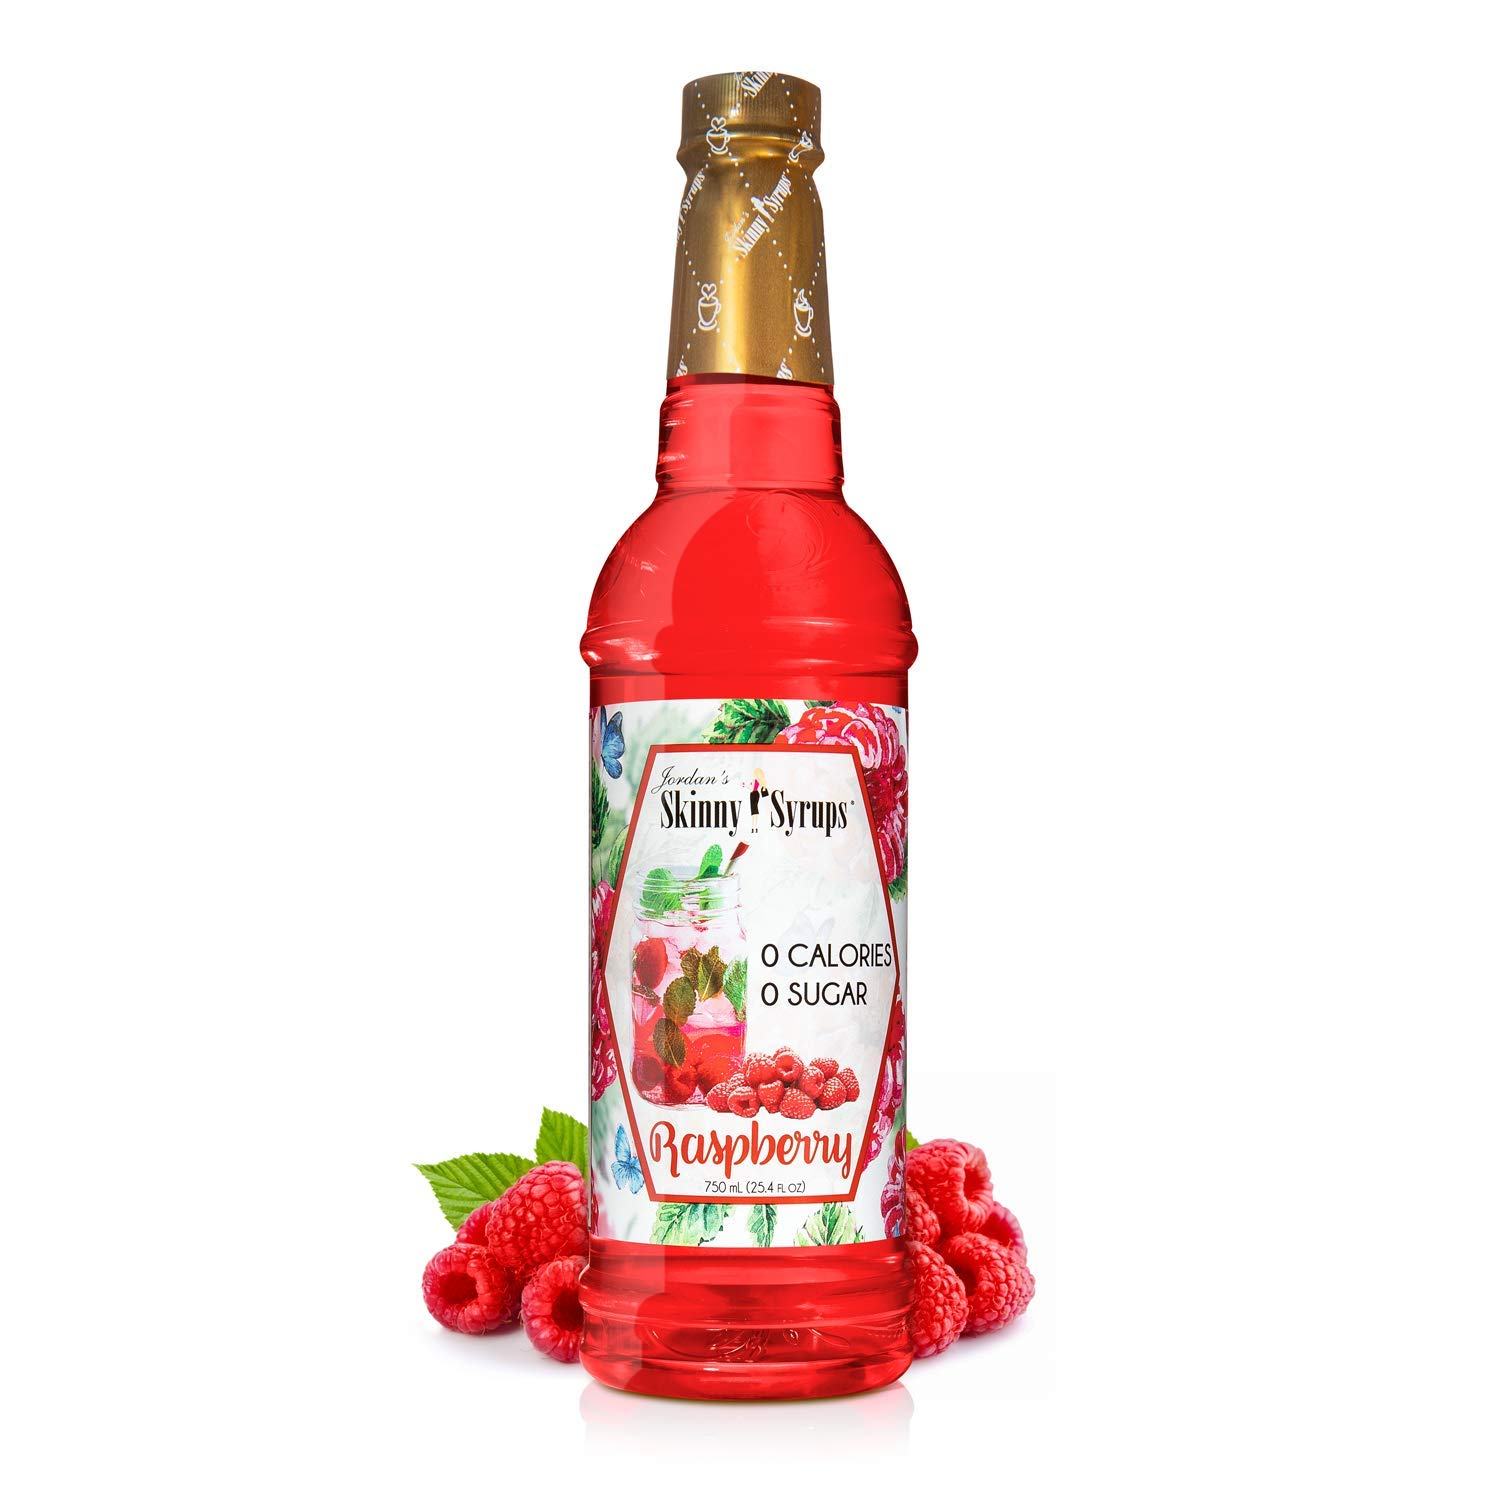 Jordan's Skinny Syrups Raspberry, Sugar Free Flavoring Syrup, 25.4 Ounce Bottle